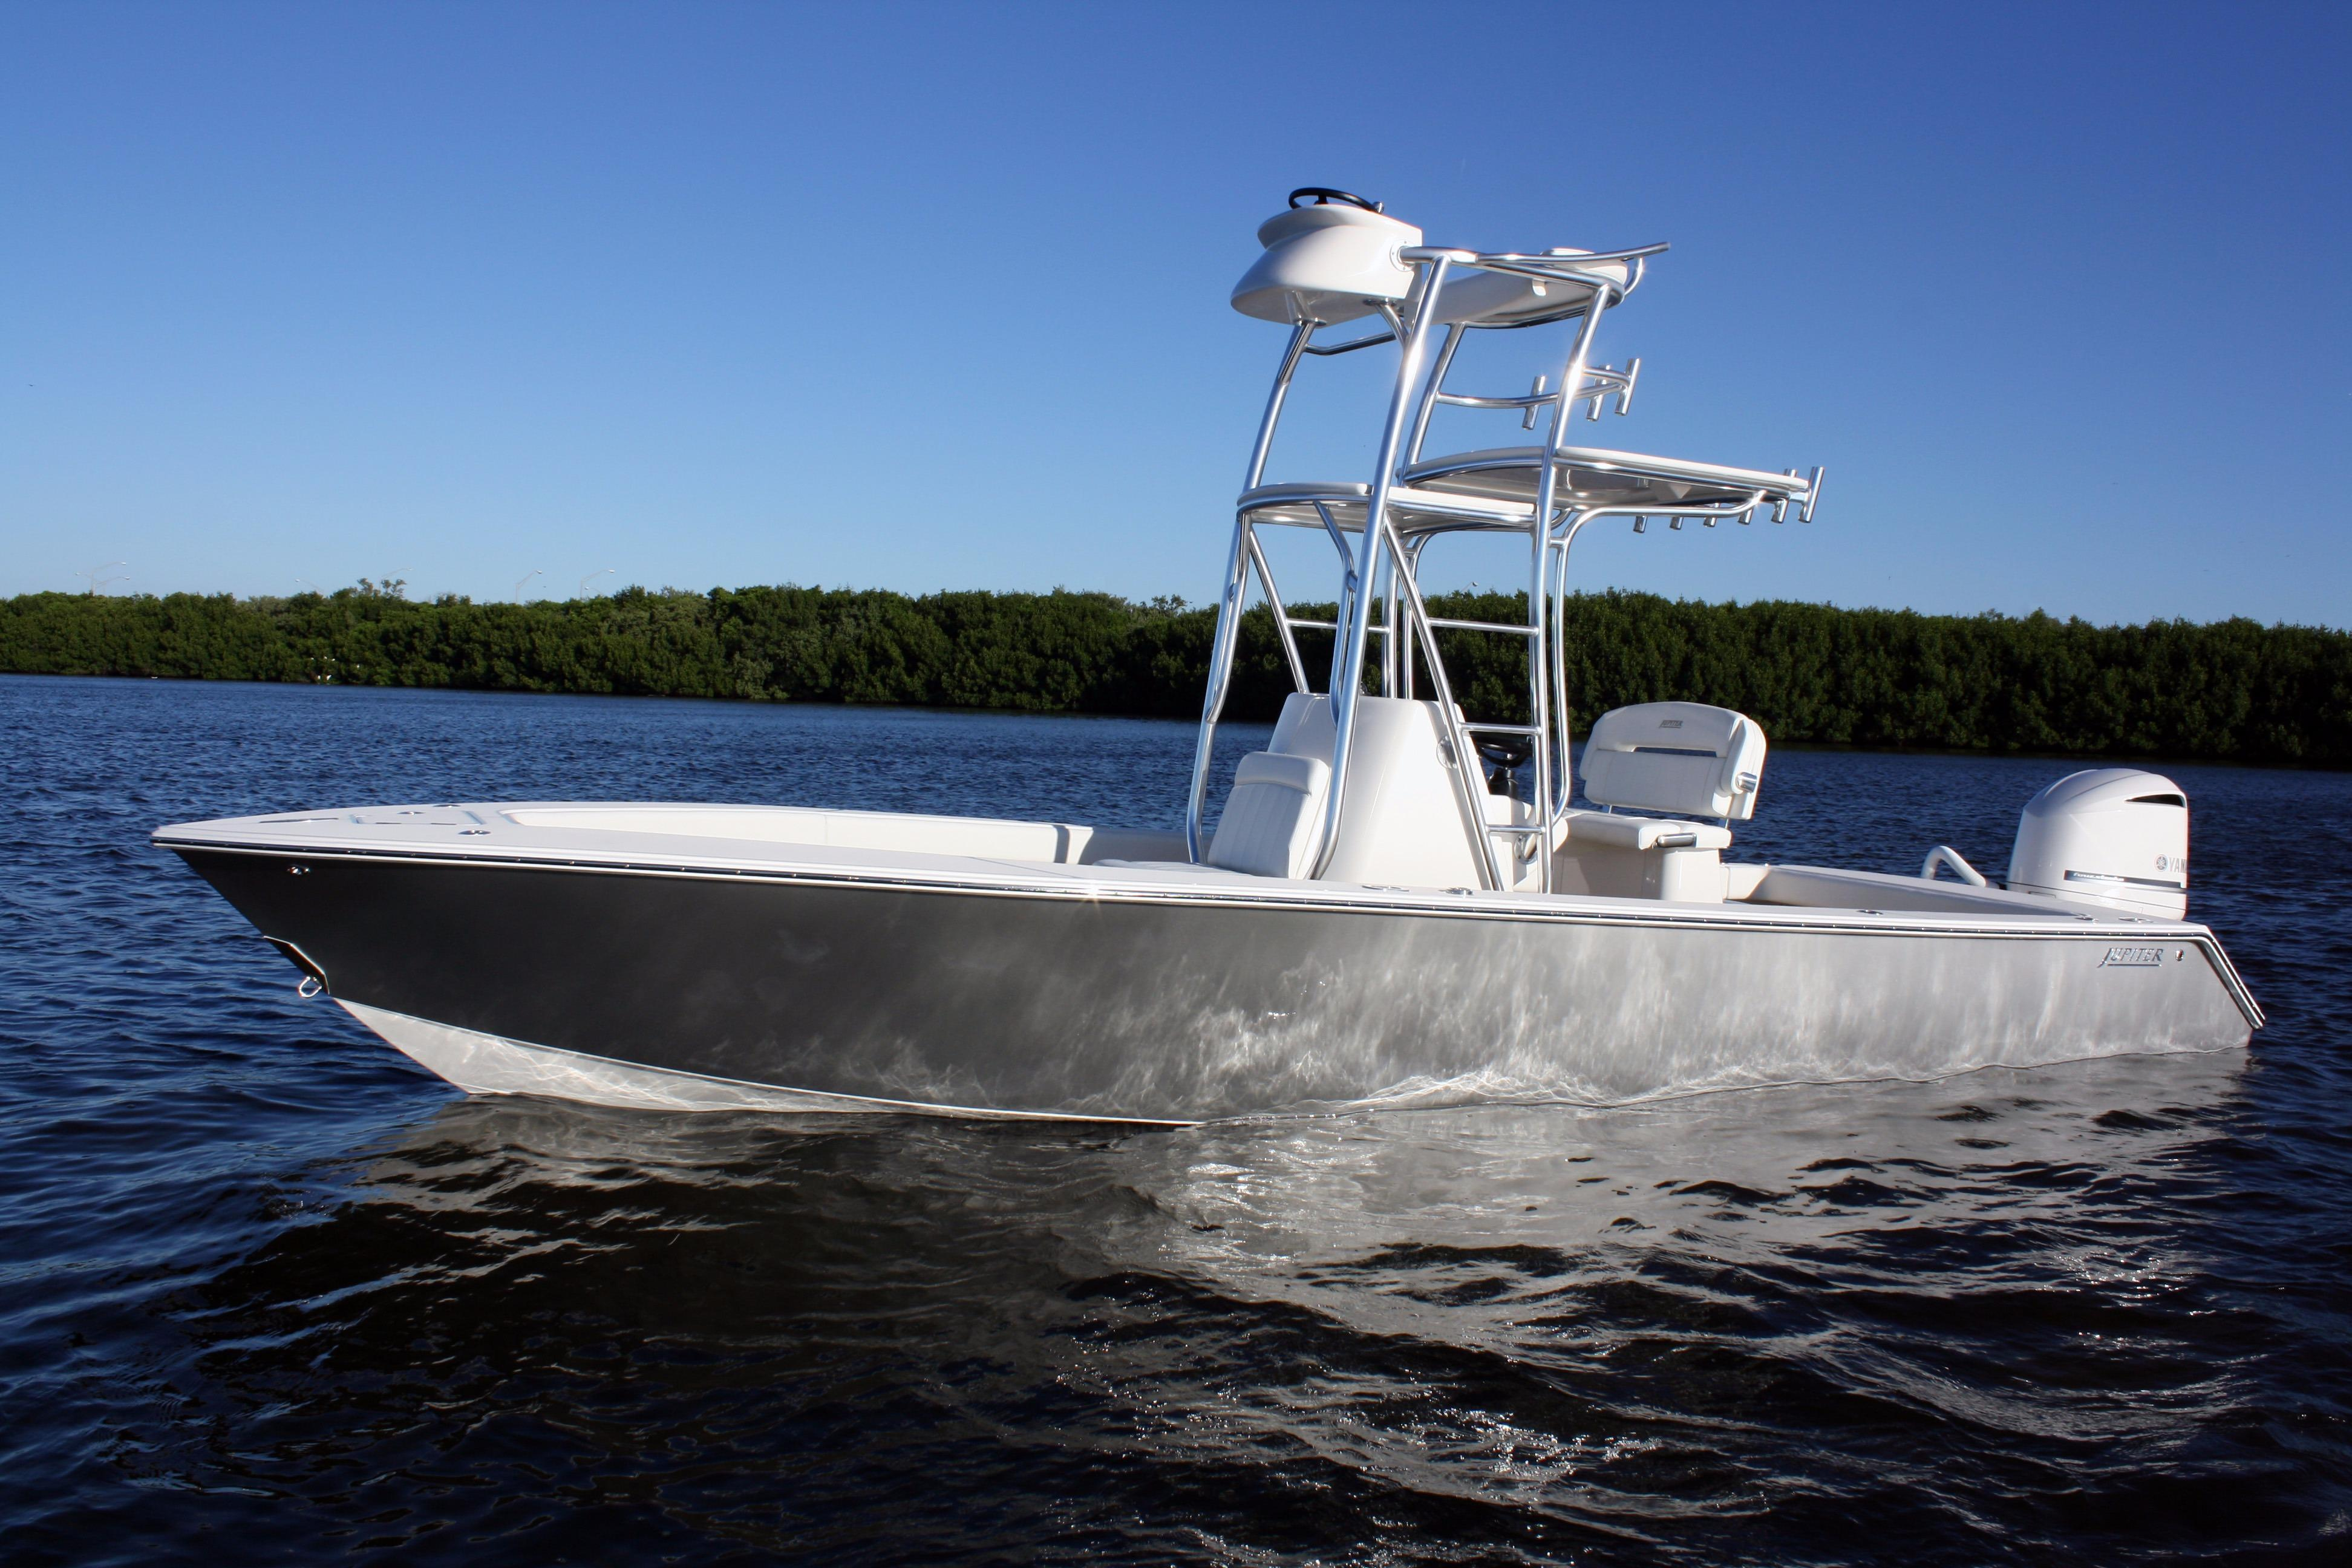 2019 Jupiter 25 Bay Power New And Used Boats For Sale